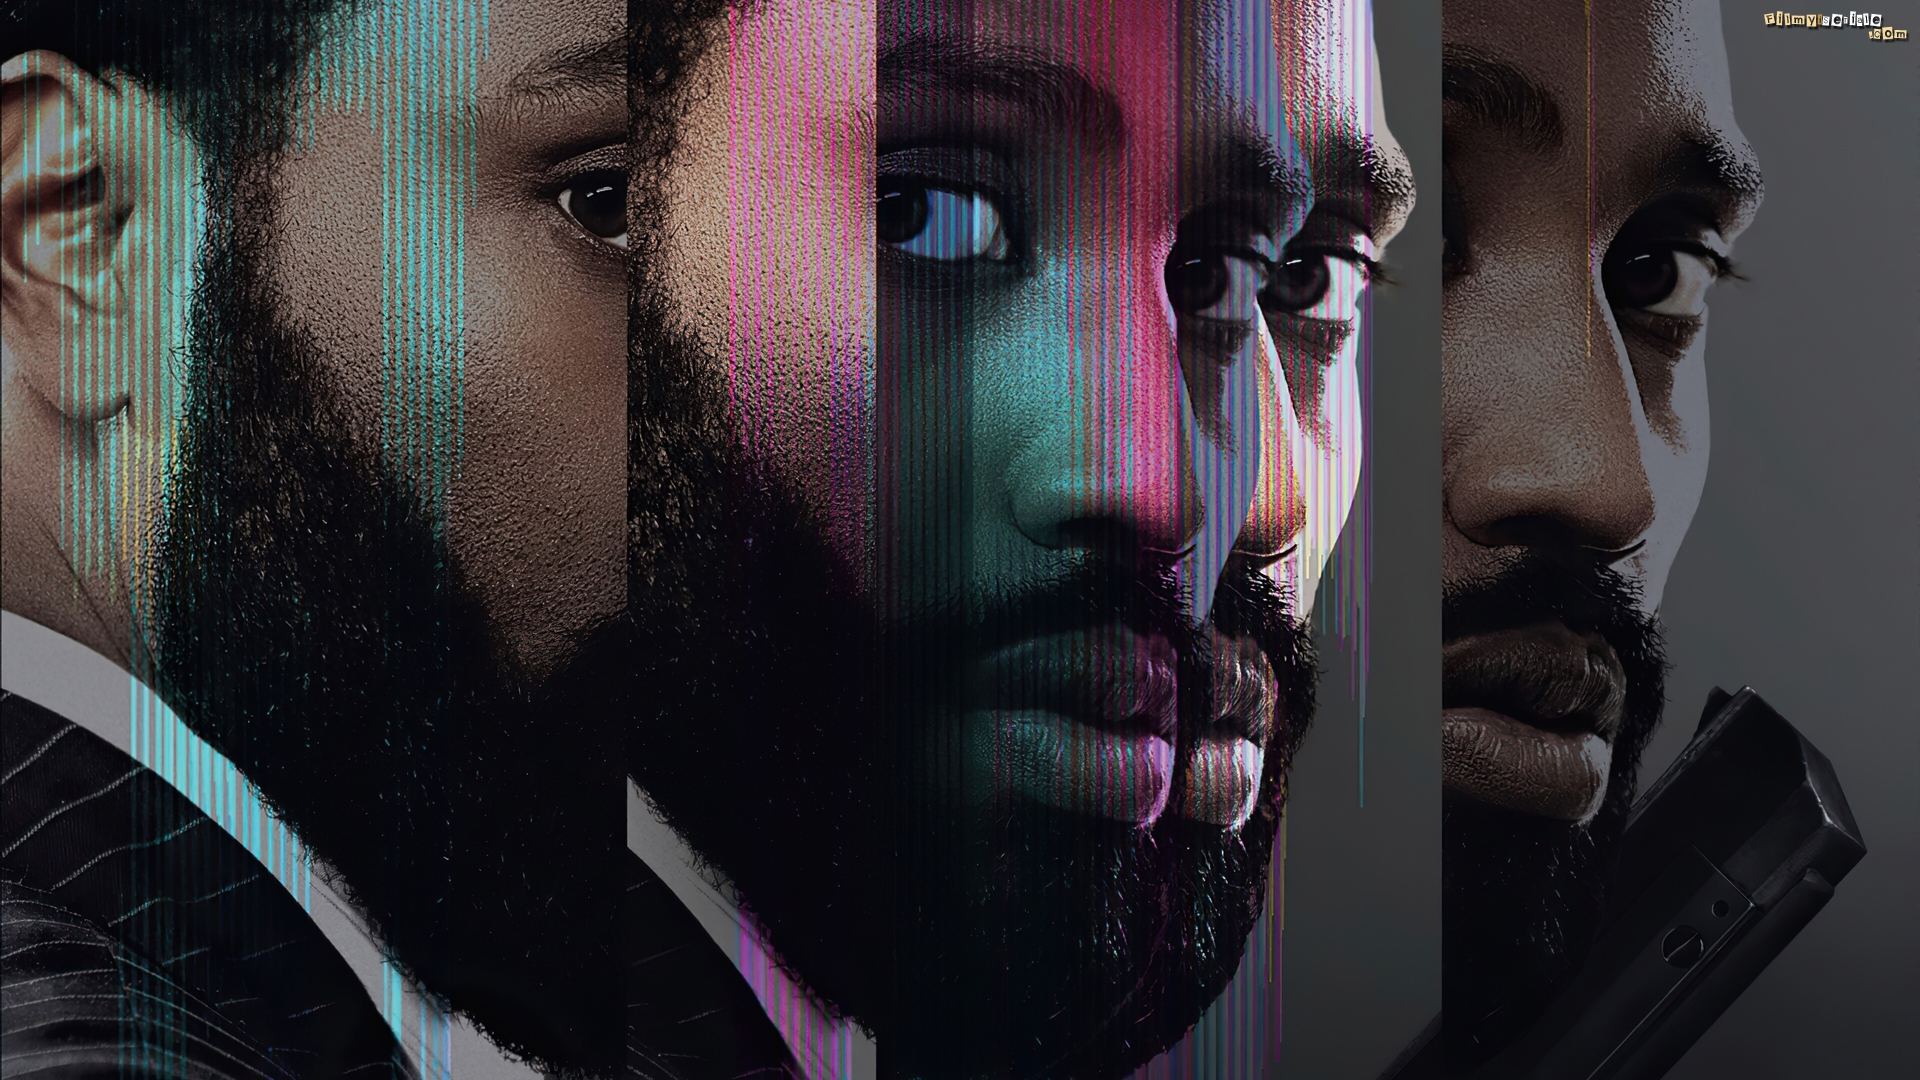 Film, Tenet, Aktor, John David Washington, Plakat